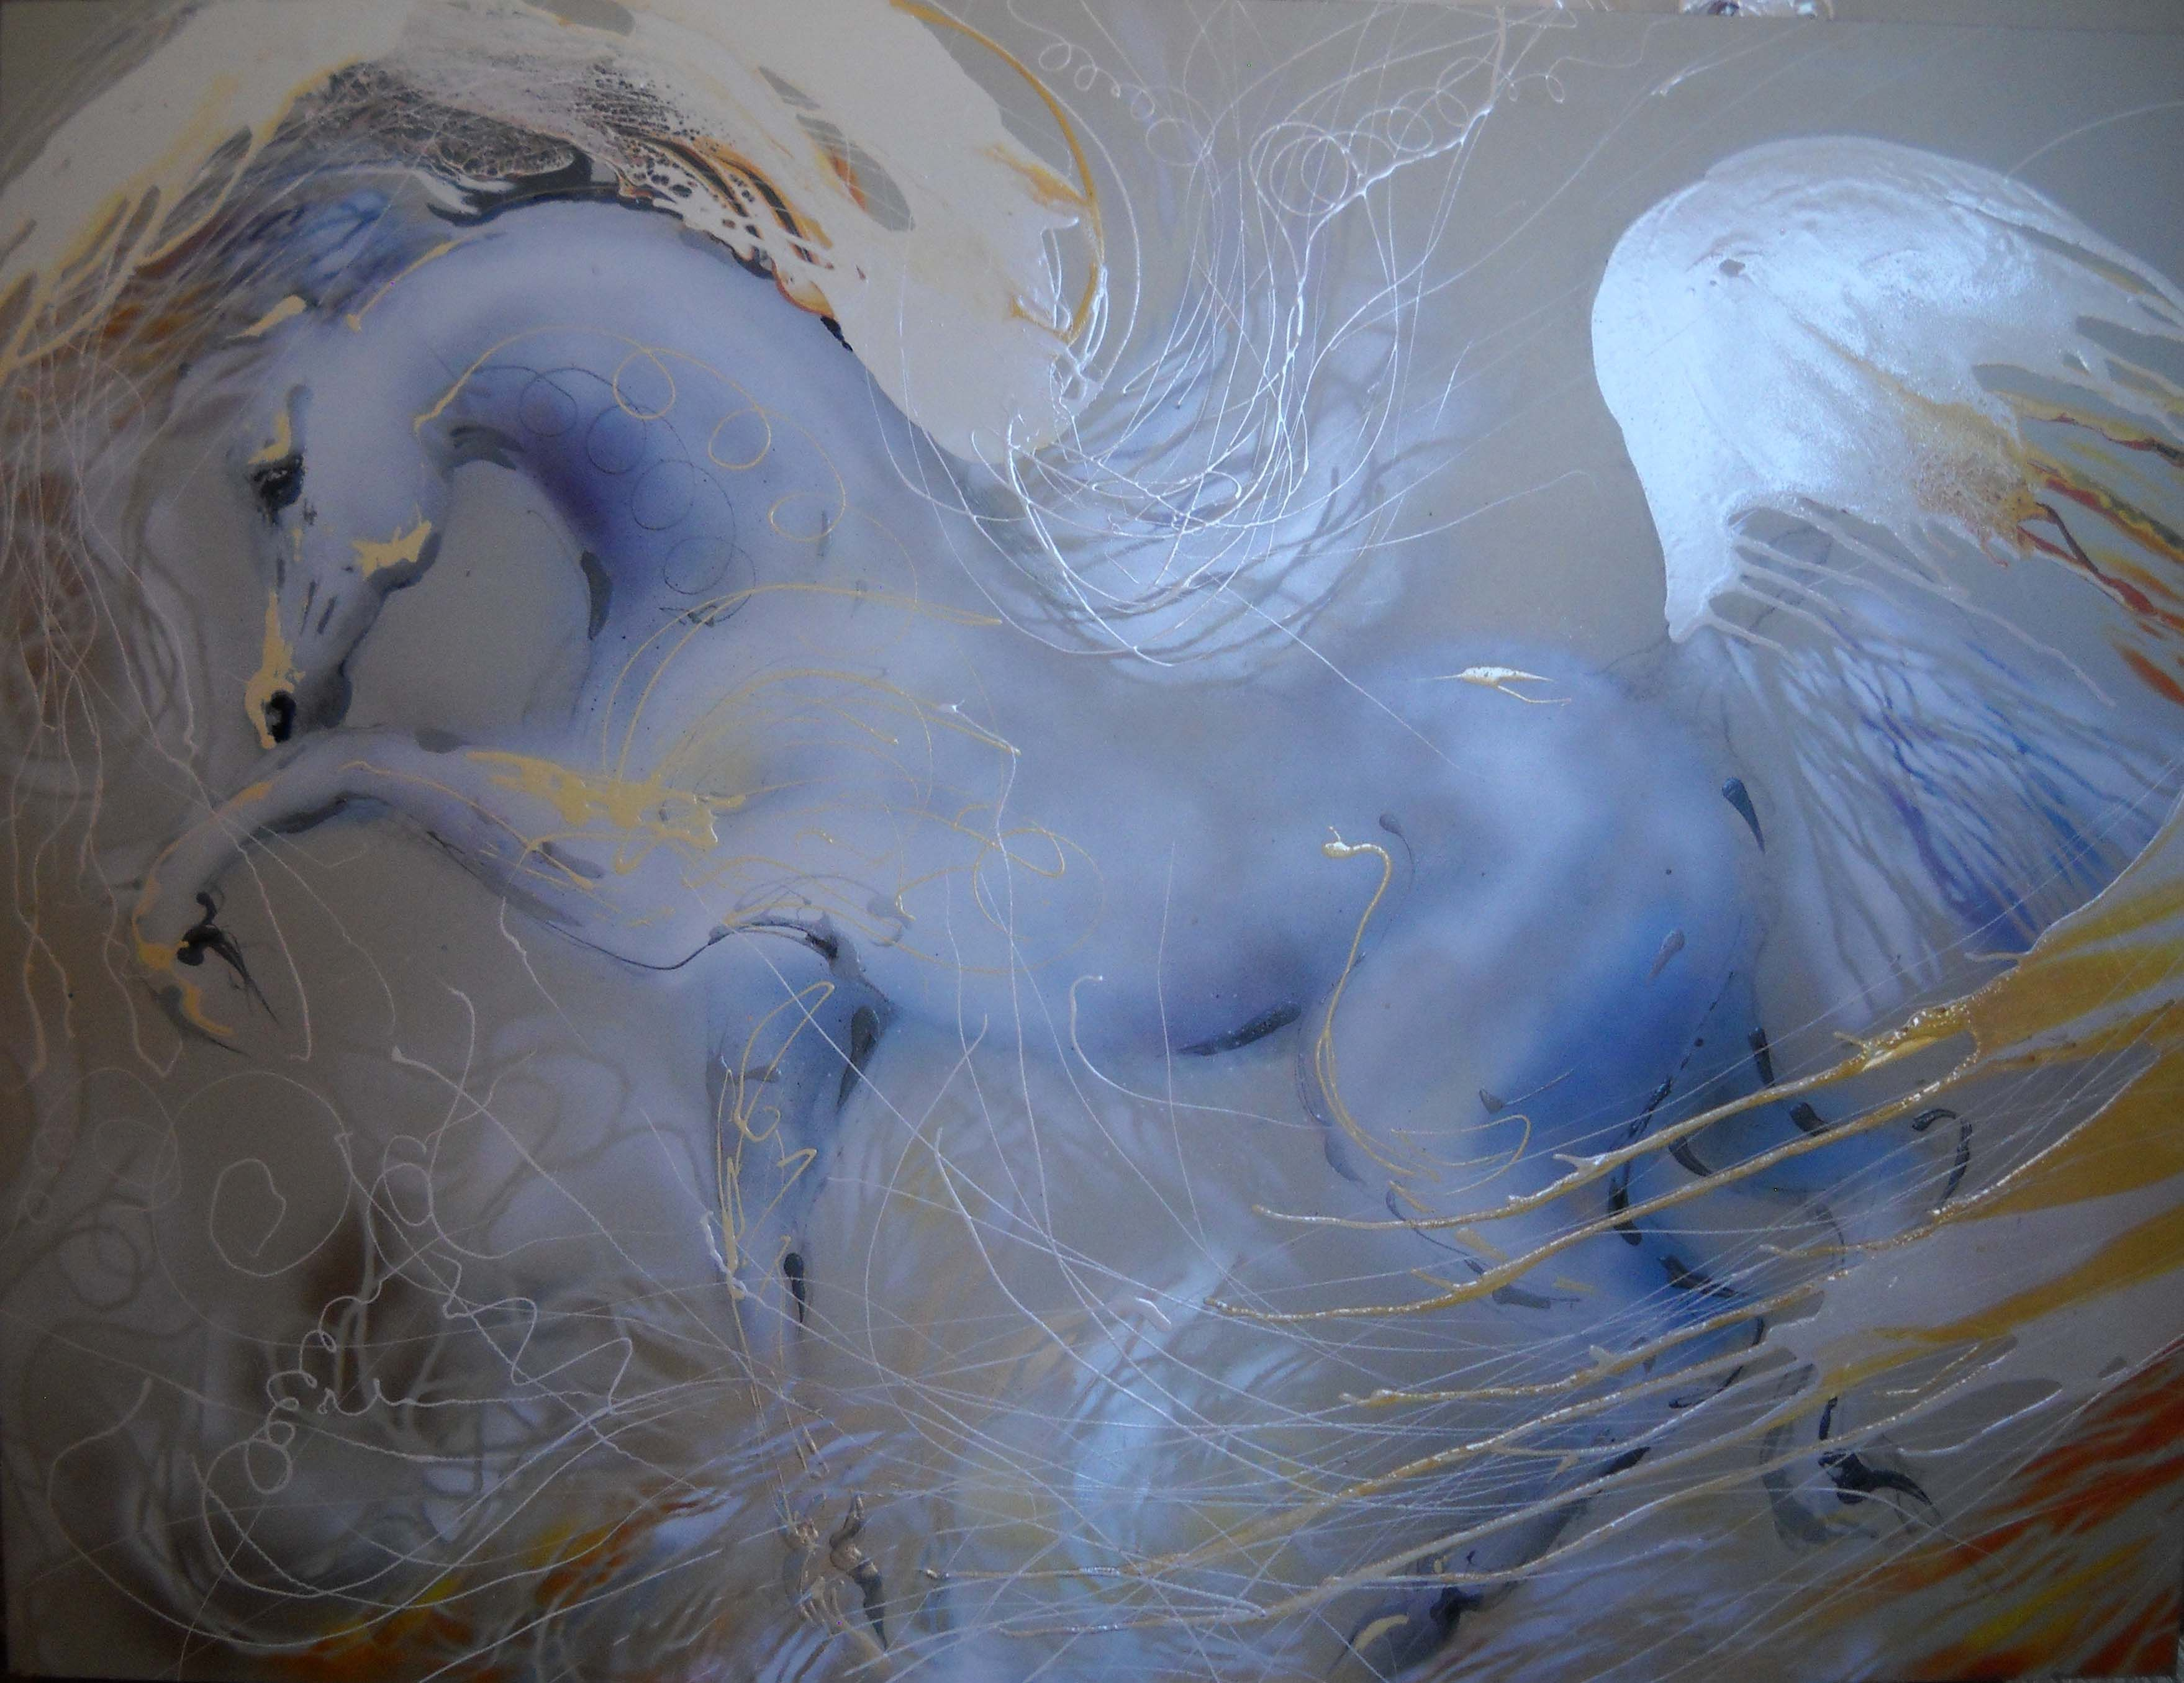 Arabian Horse Paintings   HD Wallpaper at WallpapersMap.com. Please also visit www.JustForYouPropheticArt.com for more inspirational art and stories. Thank you so much.